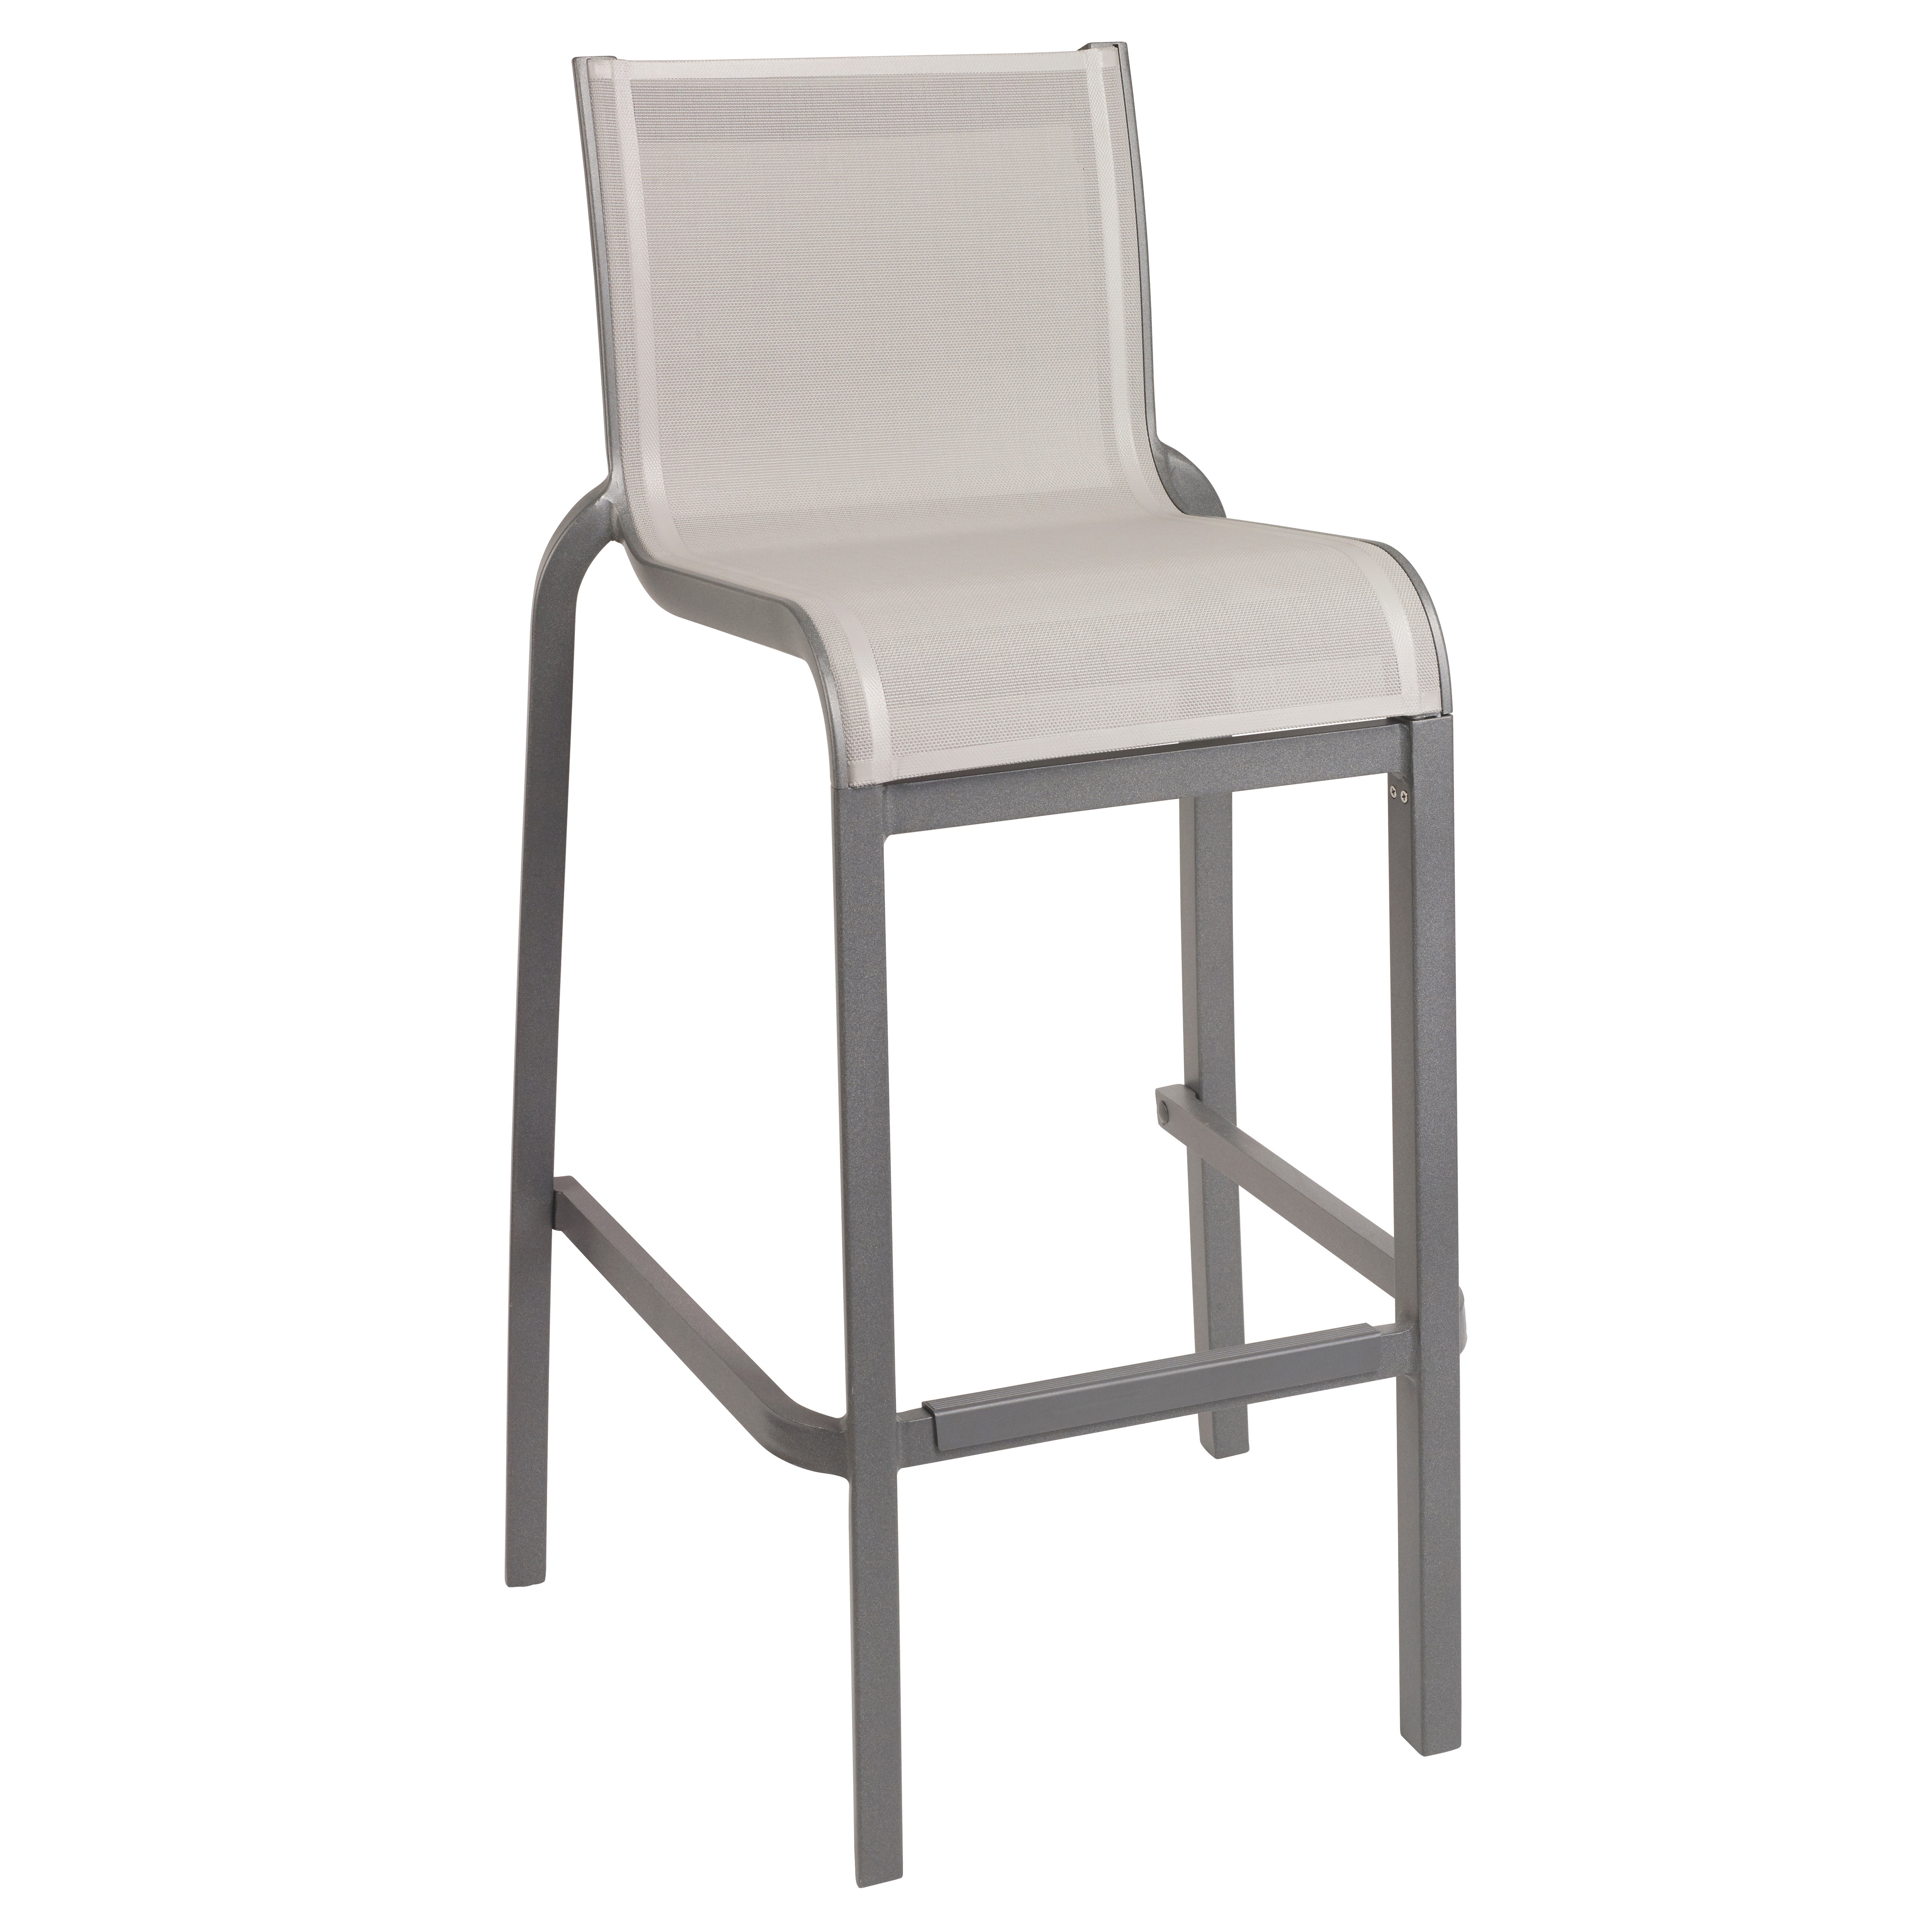 Grosfillex US300289 bar stool, stacking, outdoor